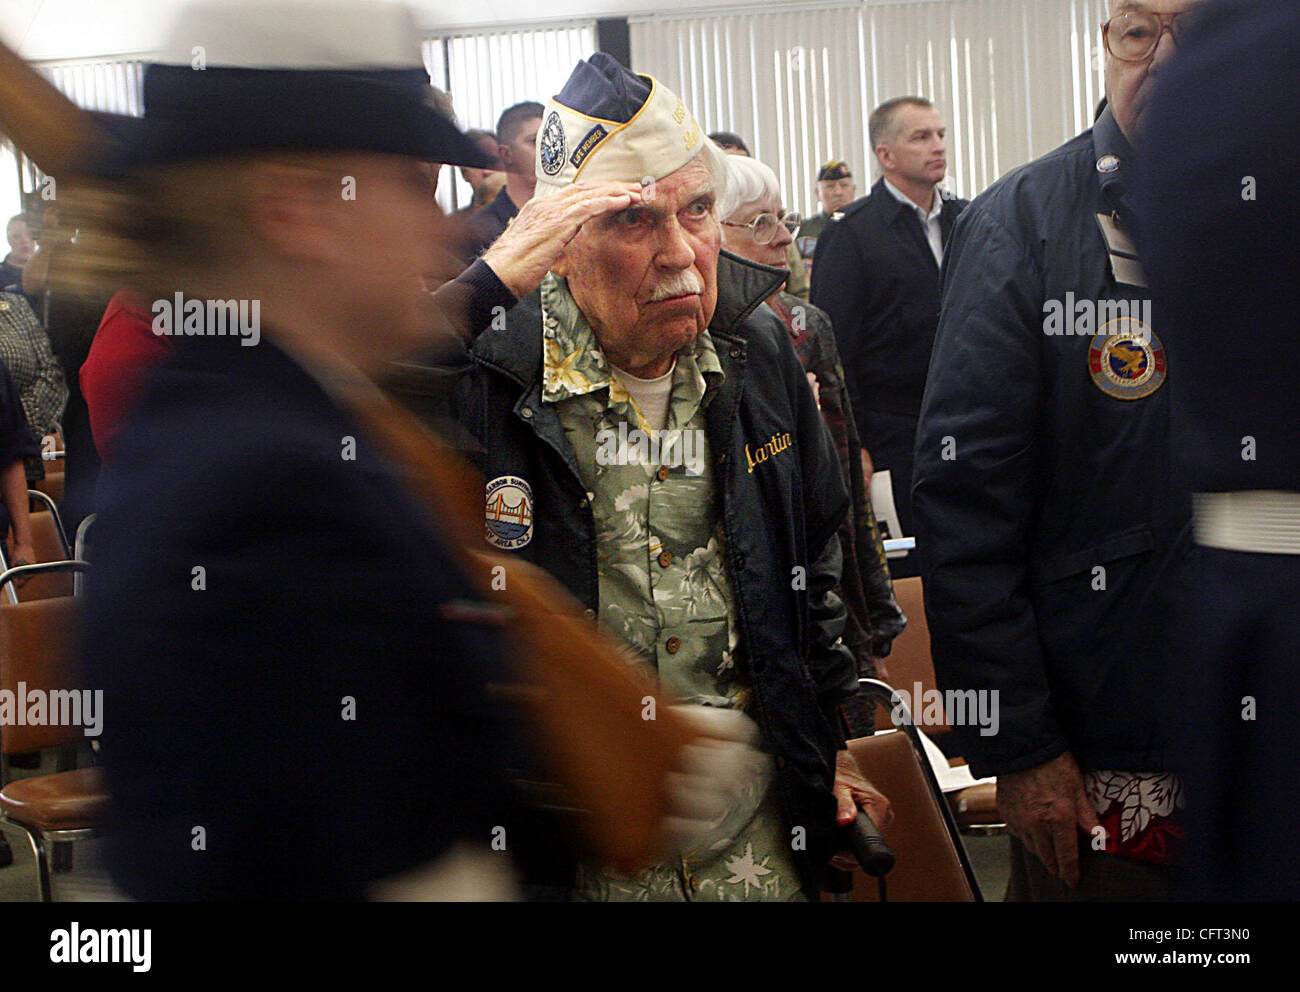 Pearl Harbor Survivors Association member Martin Schwager, who served in the Army at Ft. Shafter, HI., salutes as Stock Photo